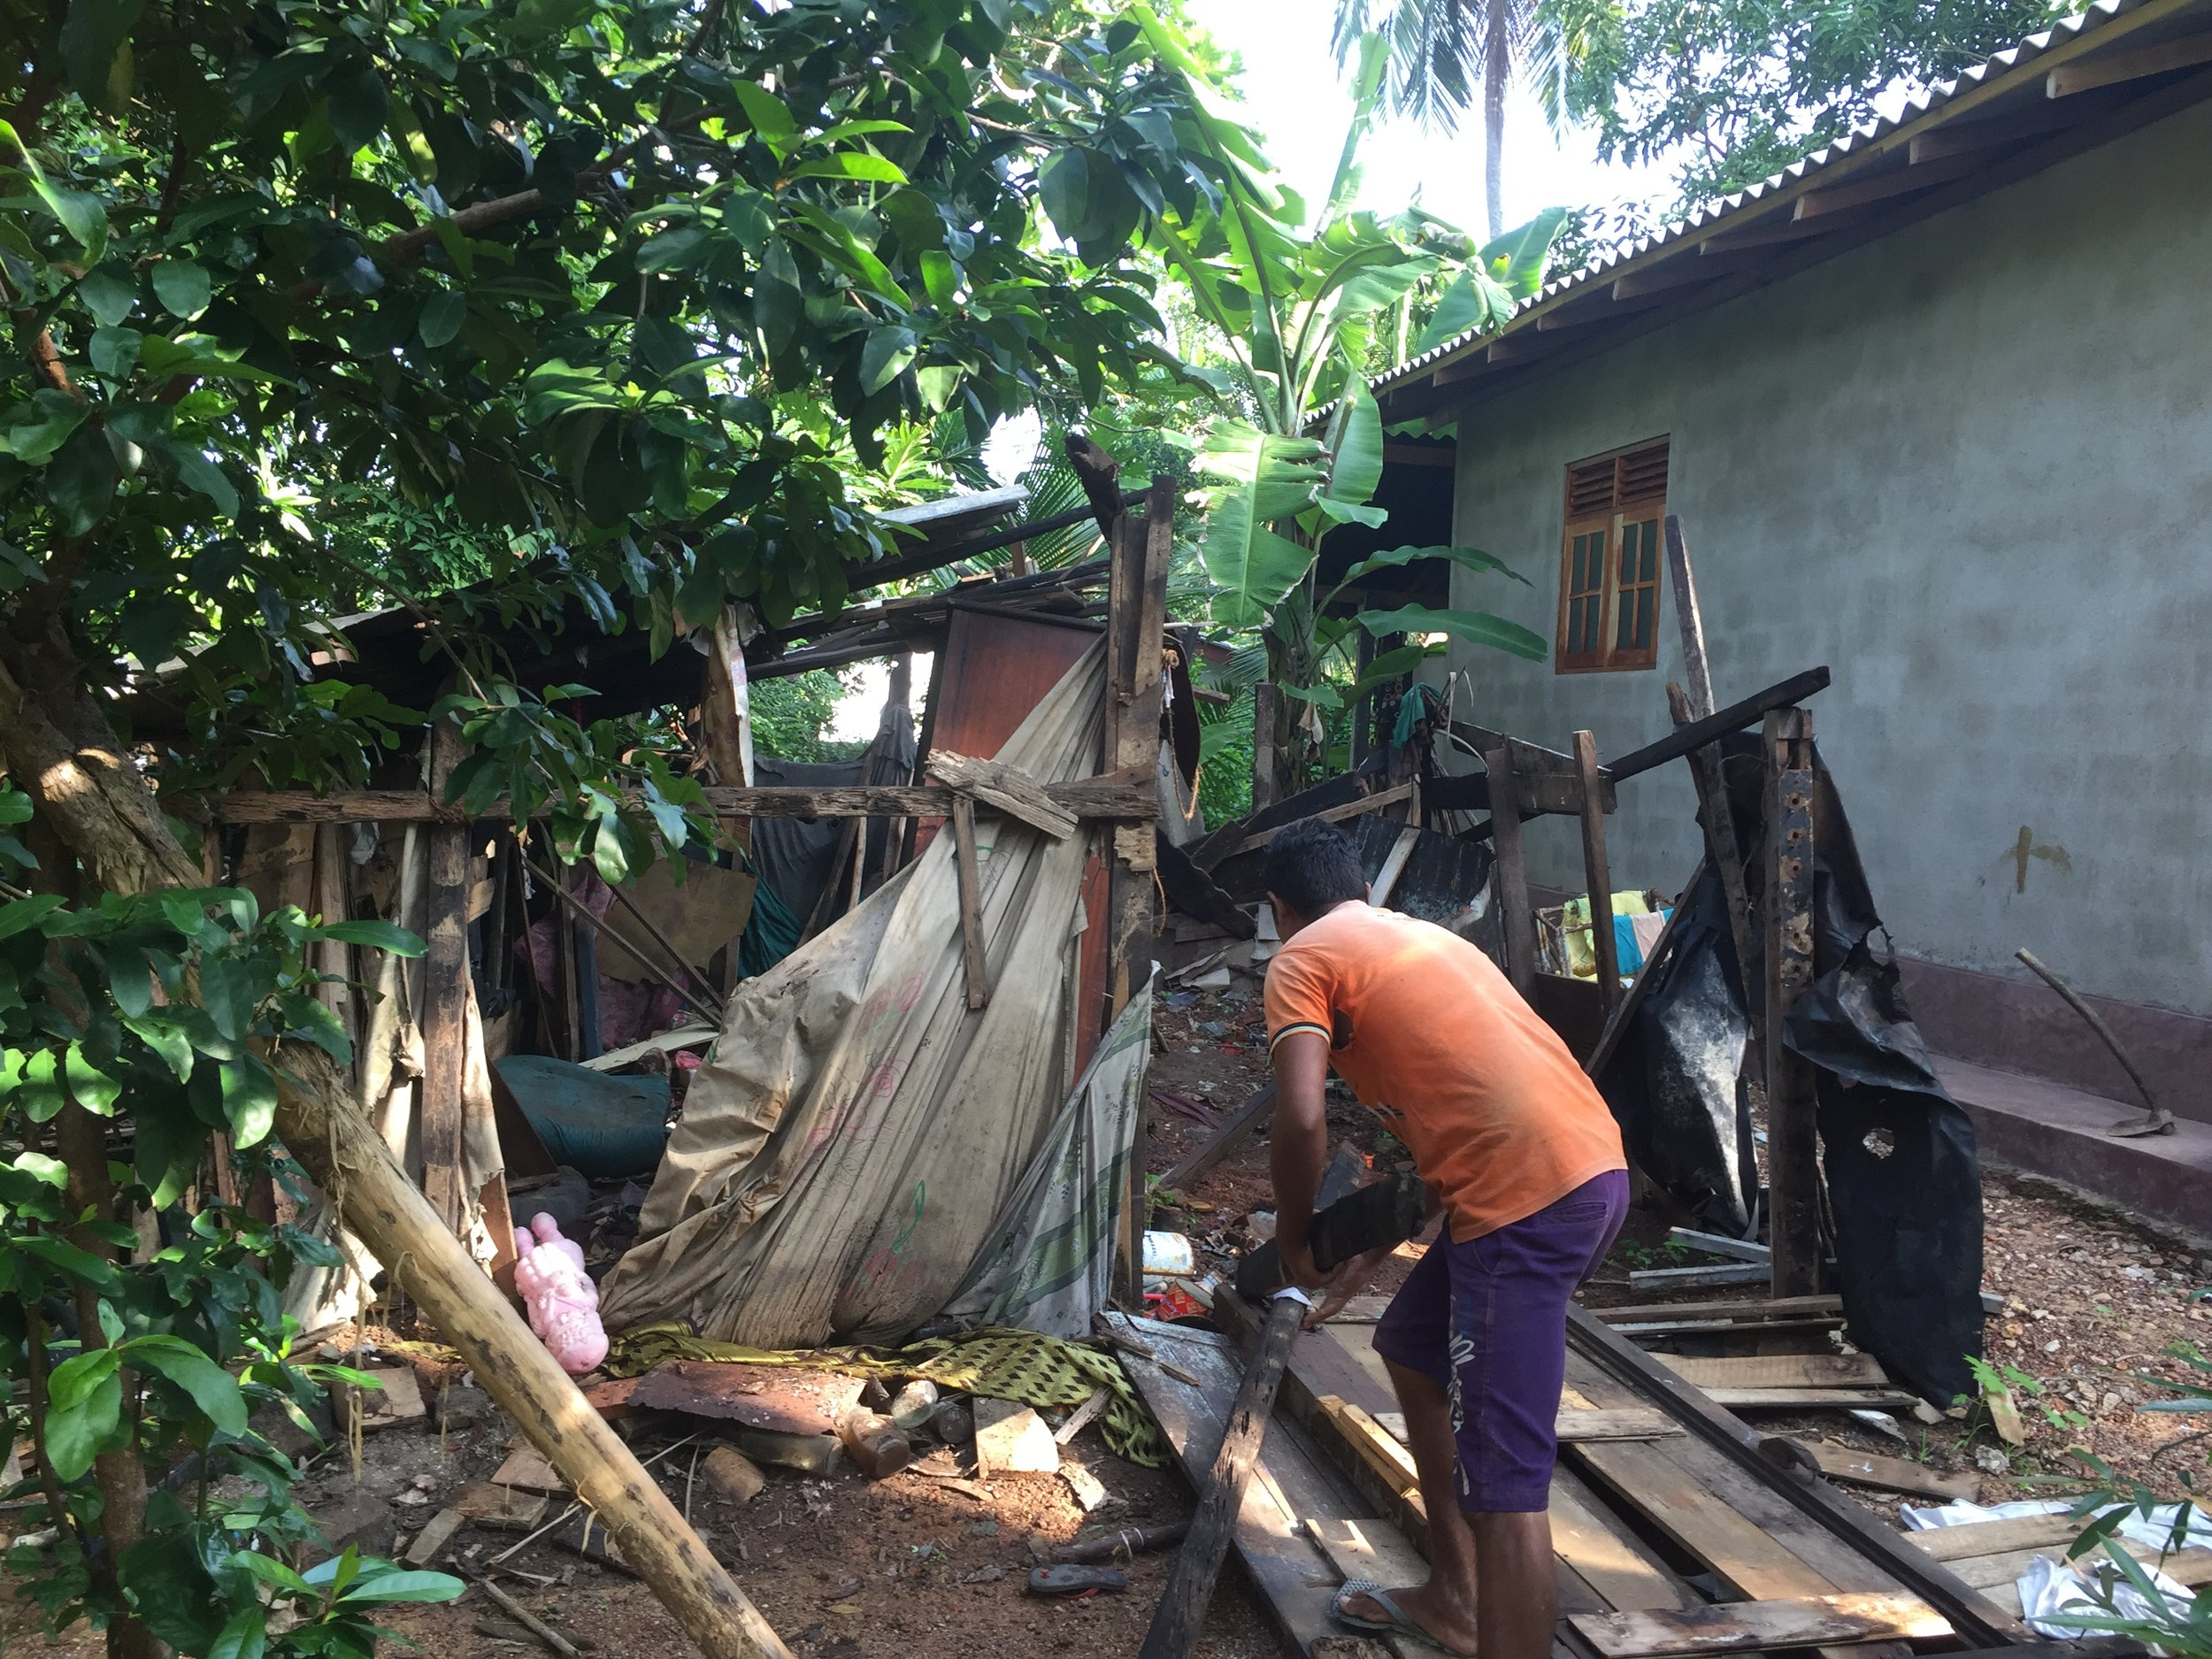 Ramanis_old_shack_torne_down_NewUse